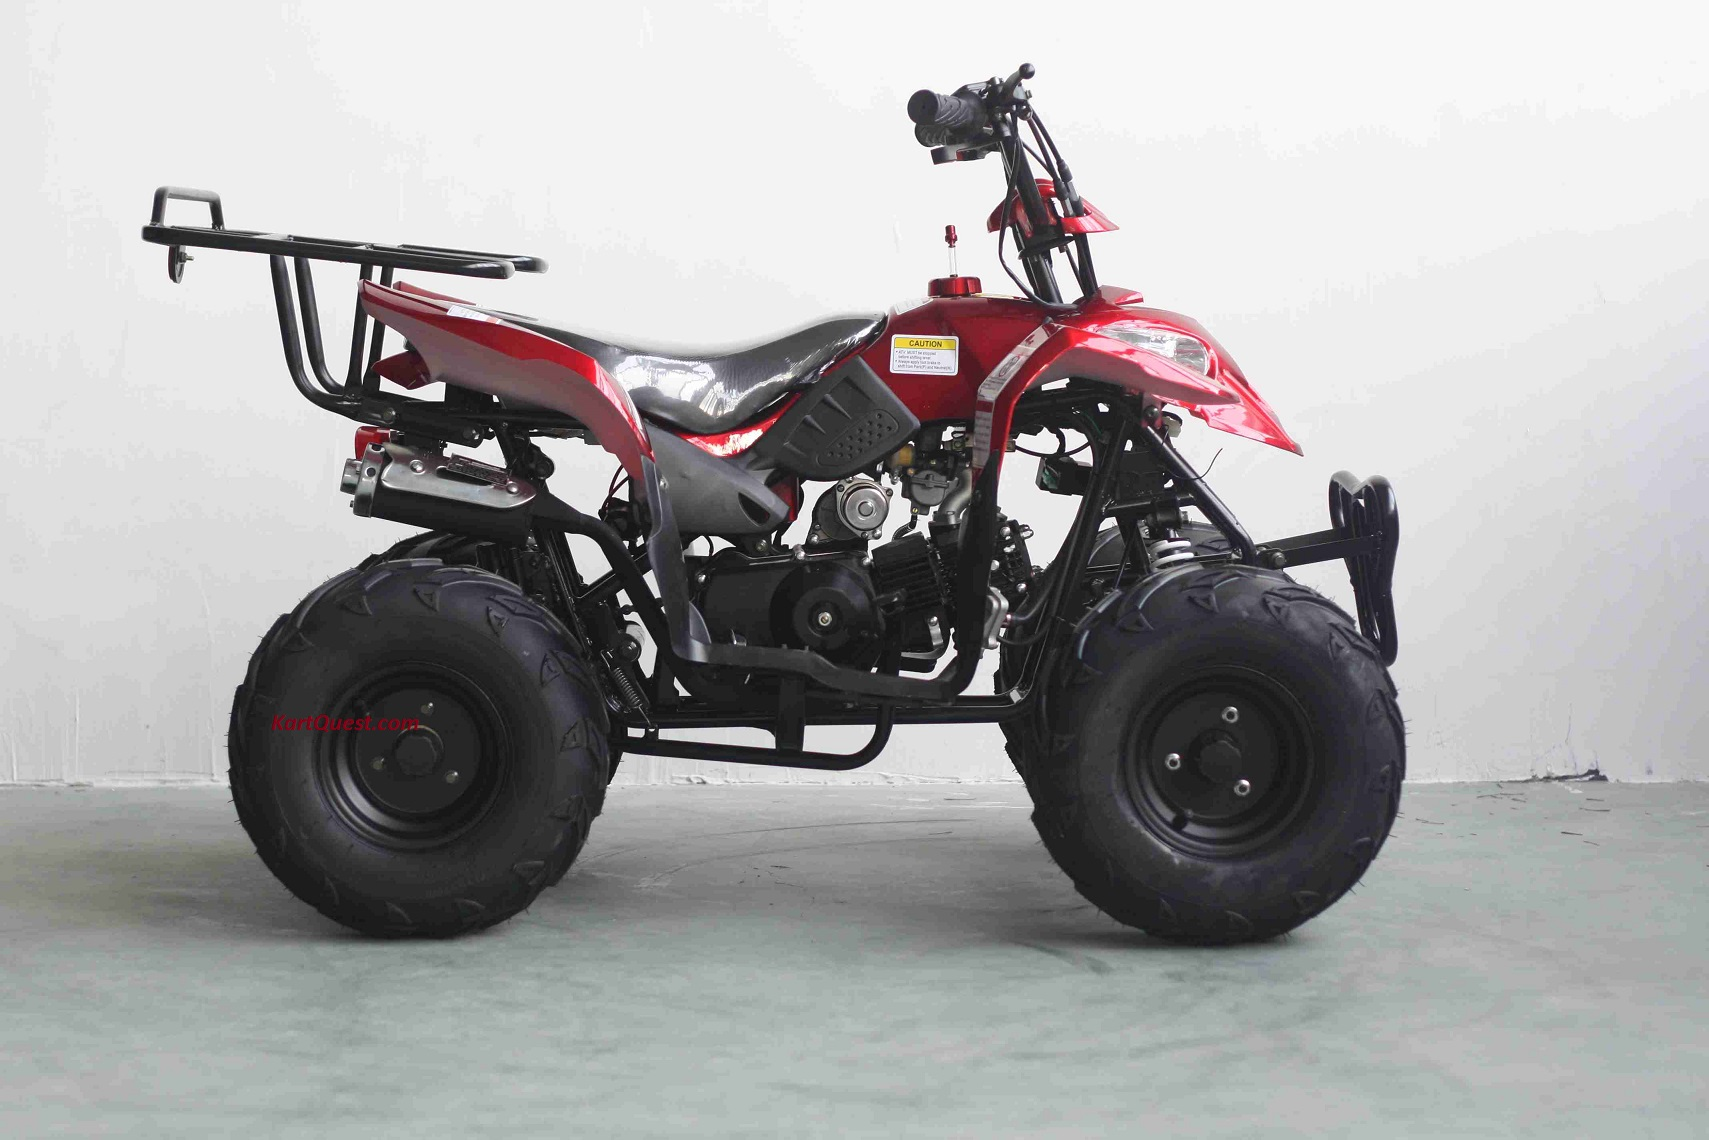 Youth Atvs For Sale In Canada Regency Mountain Cat Sport Atv Cc Quad With